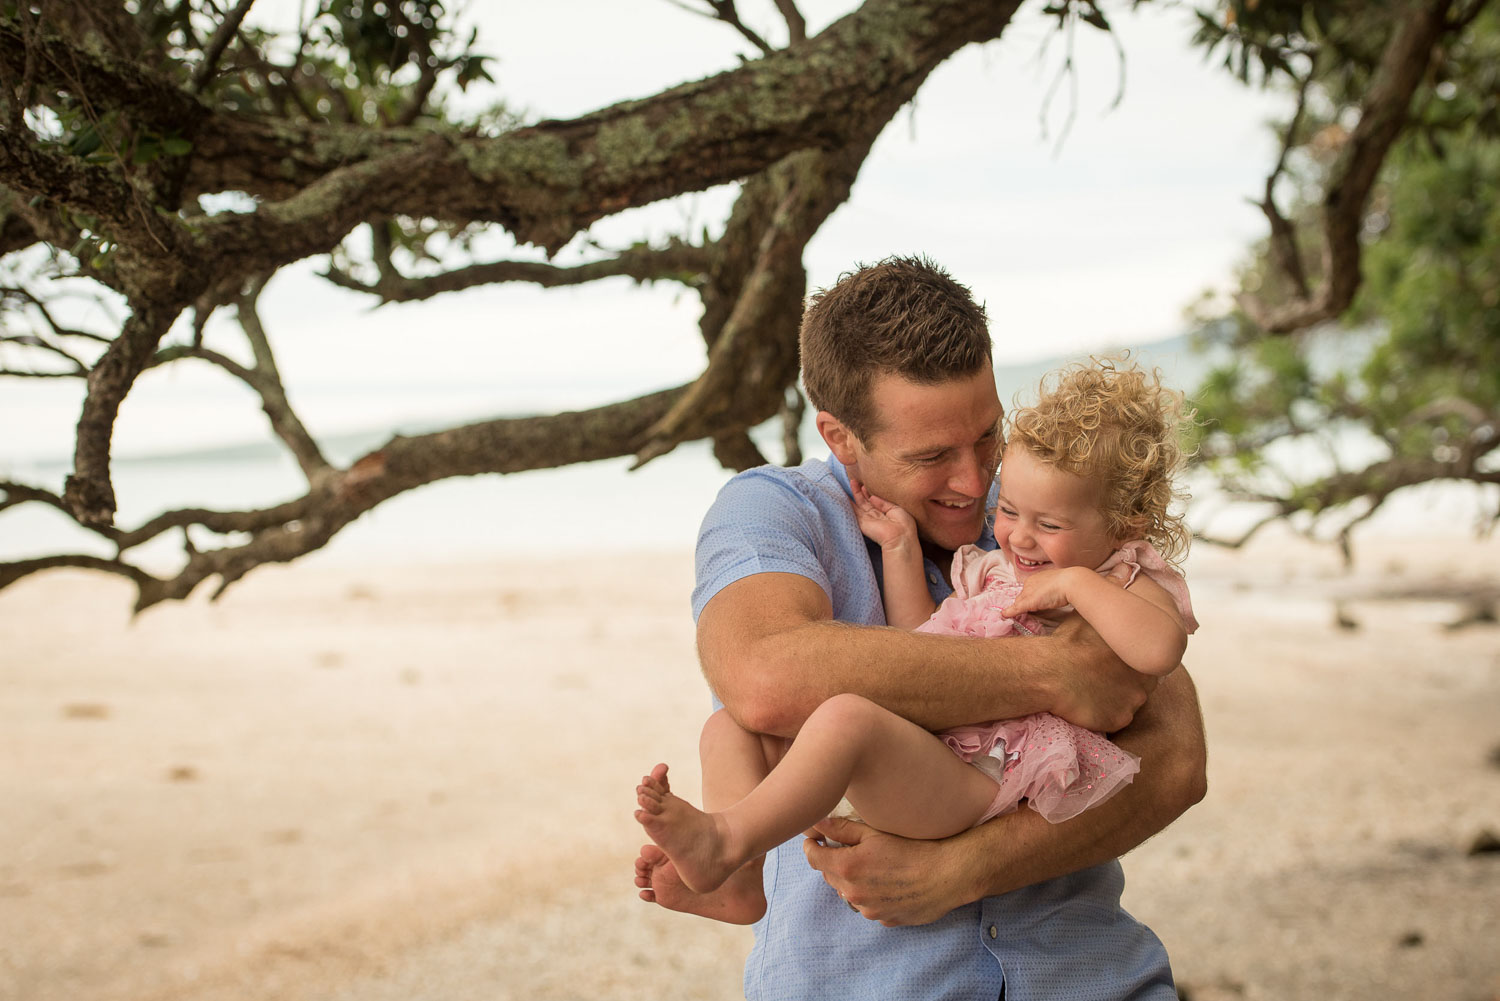 dad and child family portrait by auckland photographer siobhan kelly photography